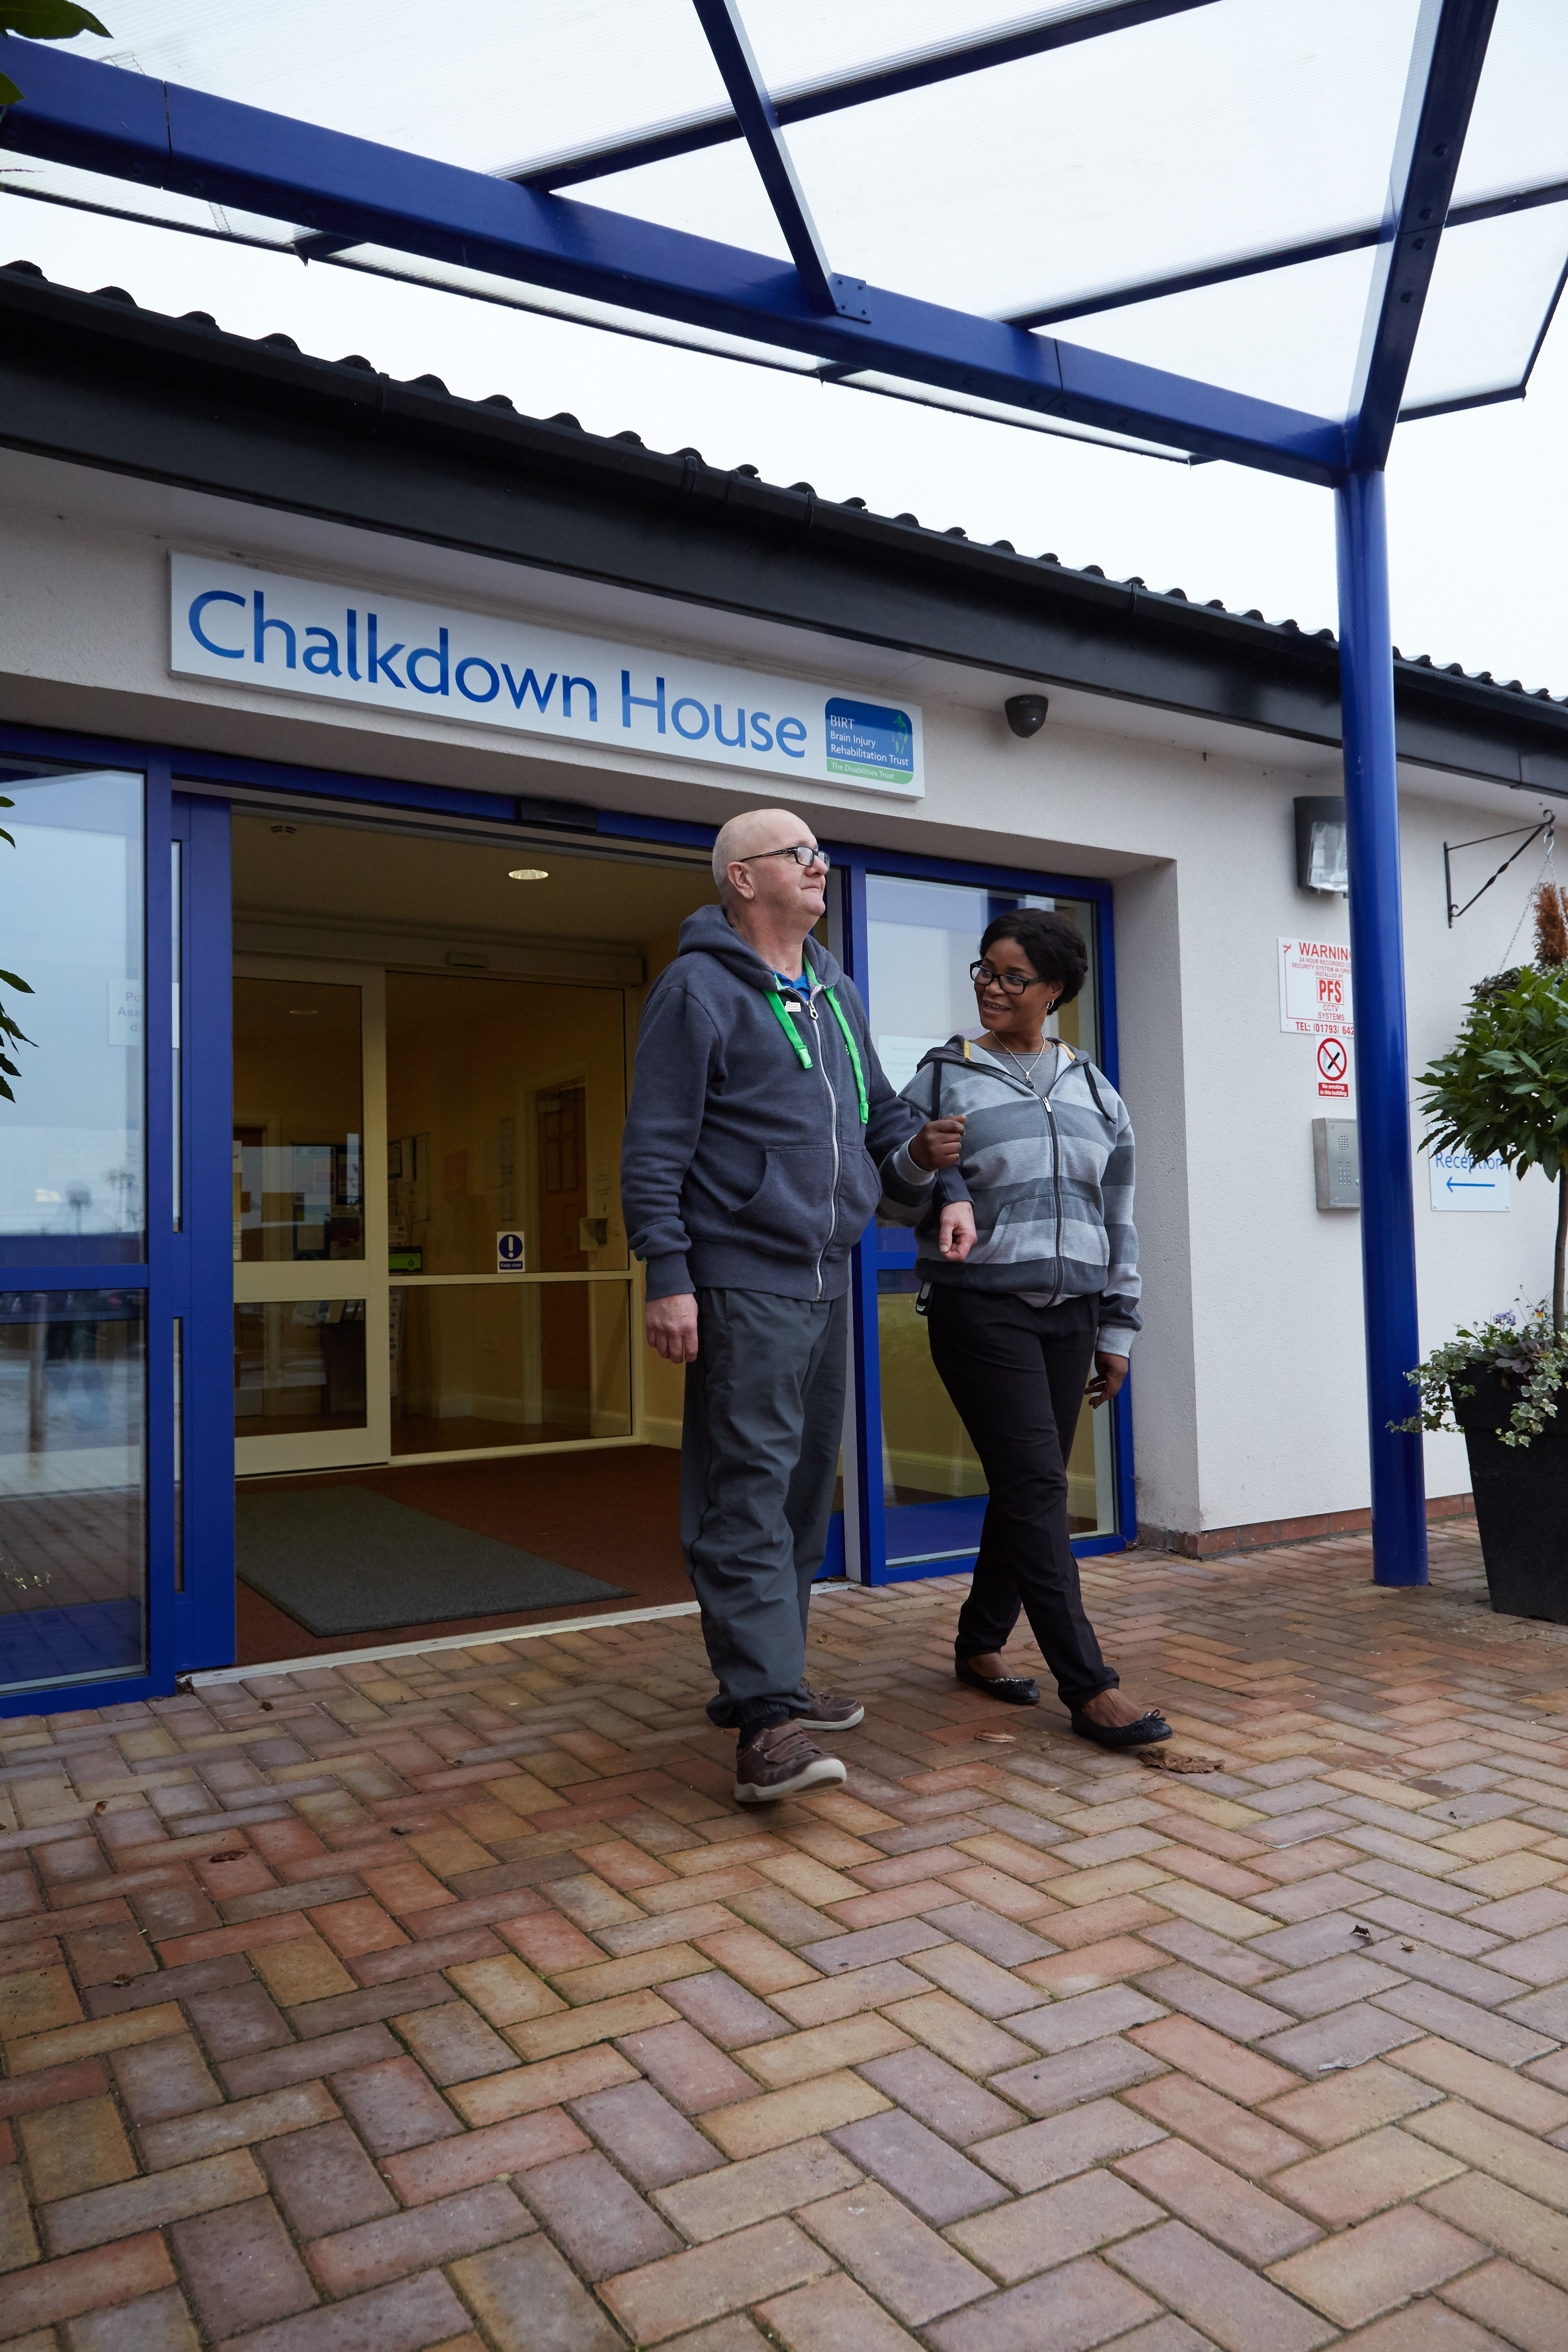 male service user standing outside Chalkdown House with female support worker